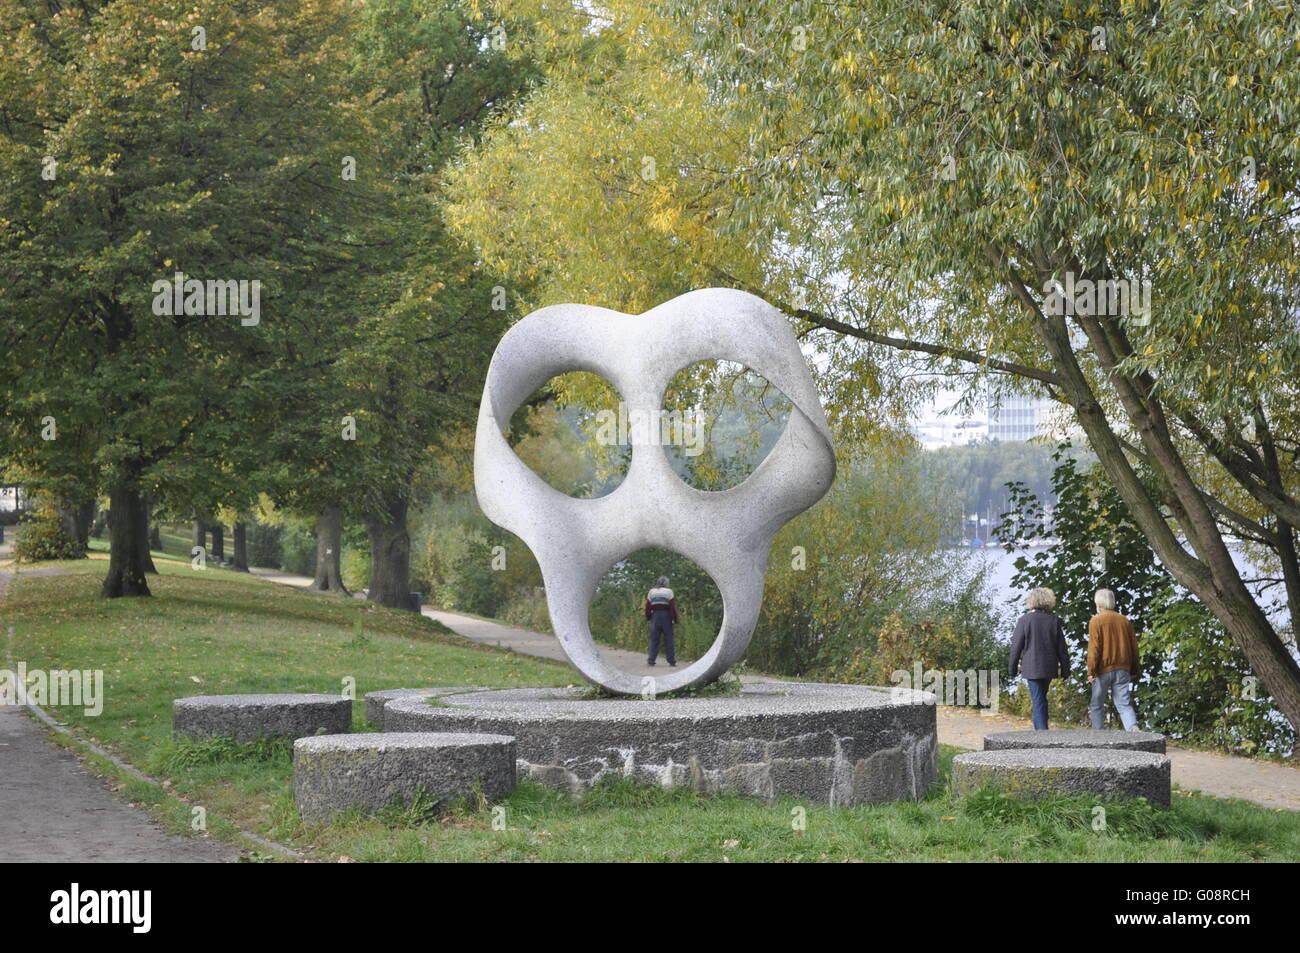 The modern sculpture - Stock Image